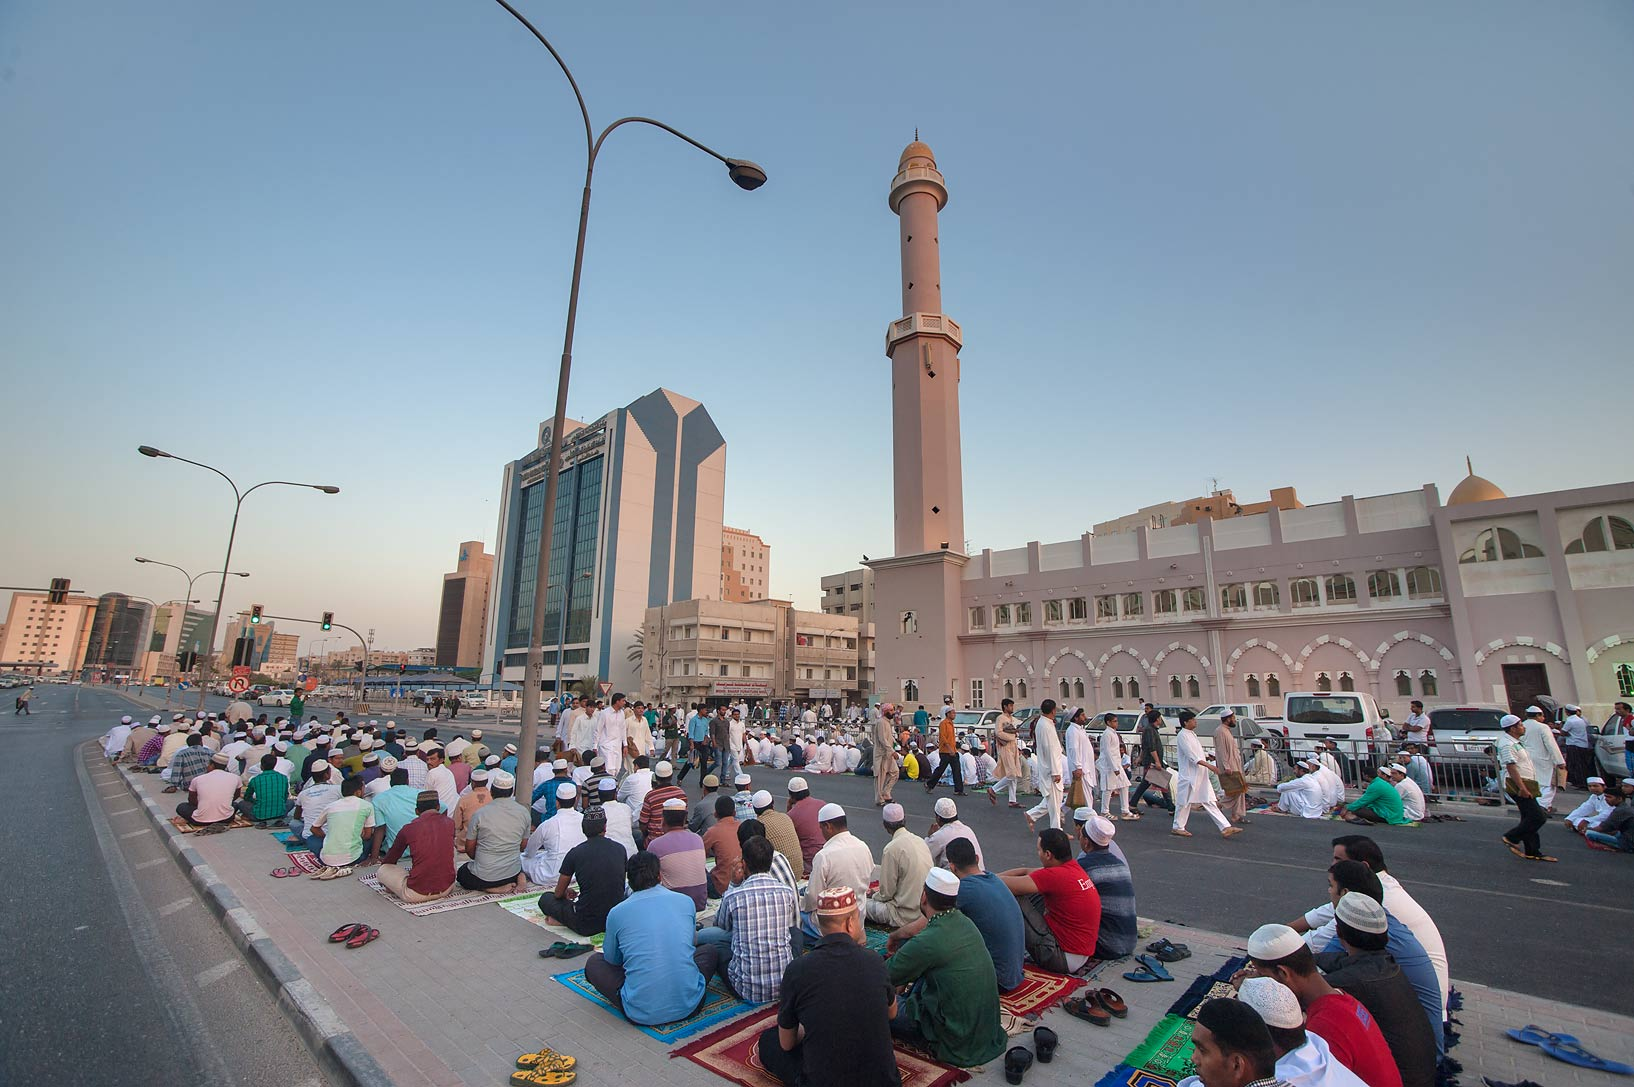 Eid al-Adha prayer near Al Asmakh Mosque at...masjid) in Musheirib area. Doha, Qatar